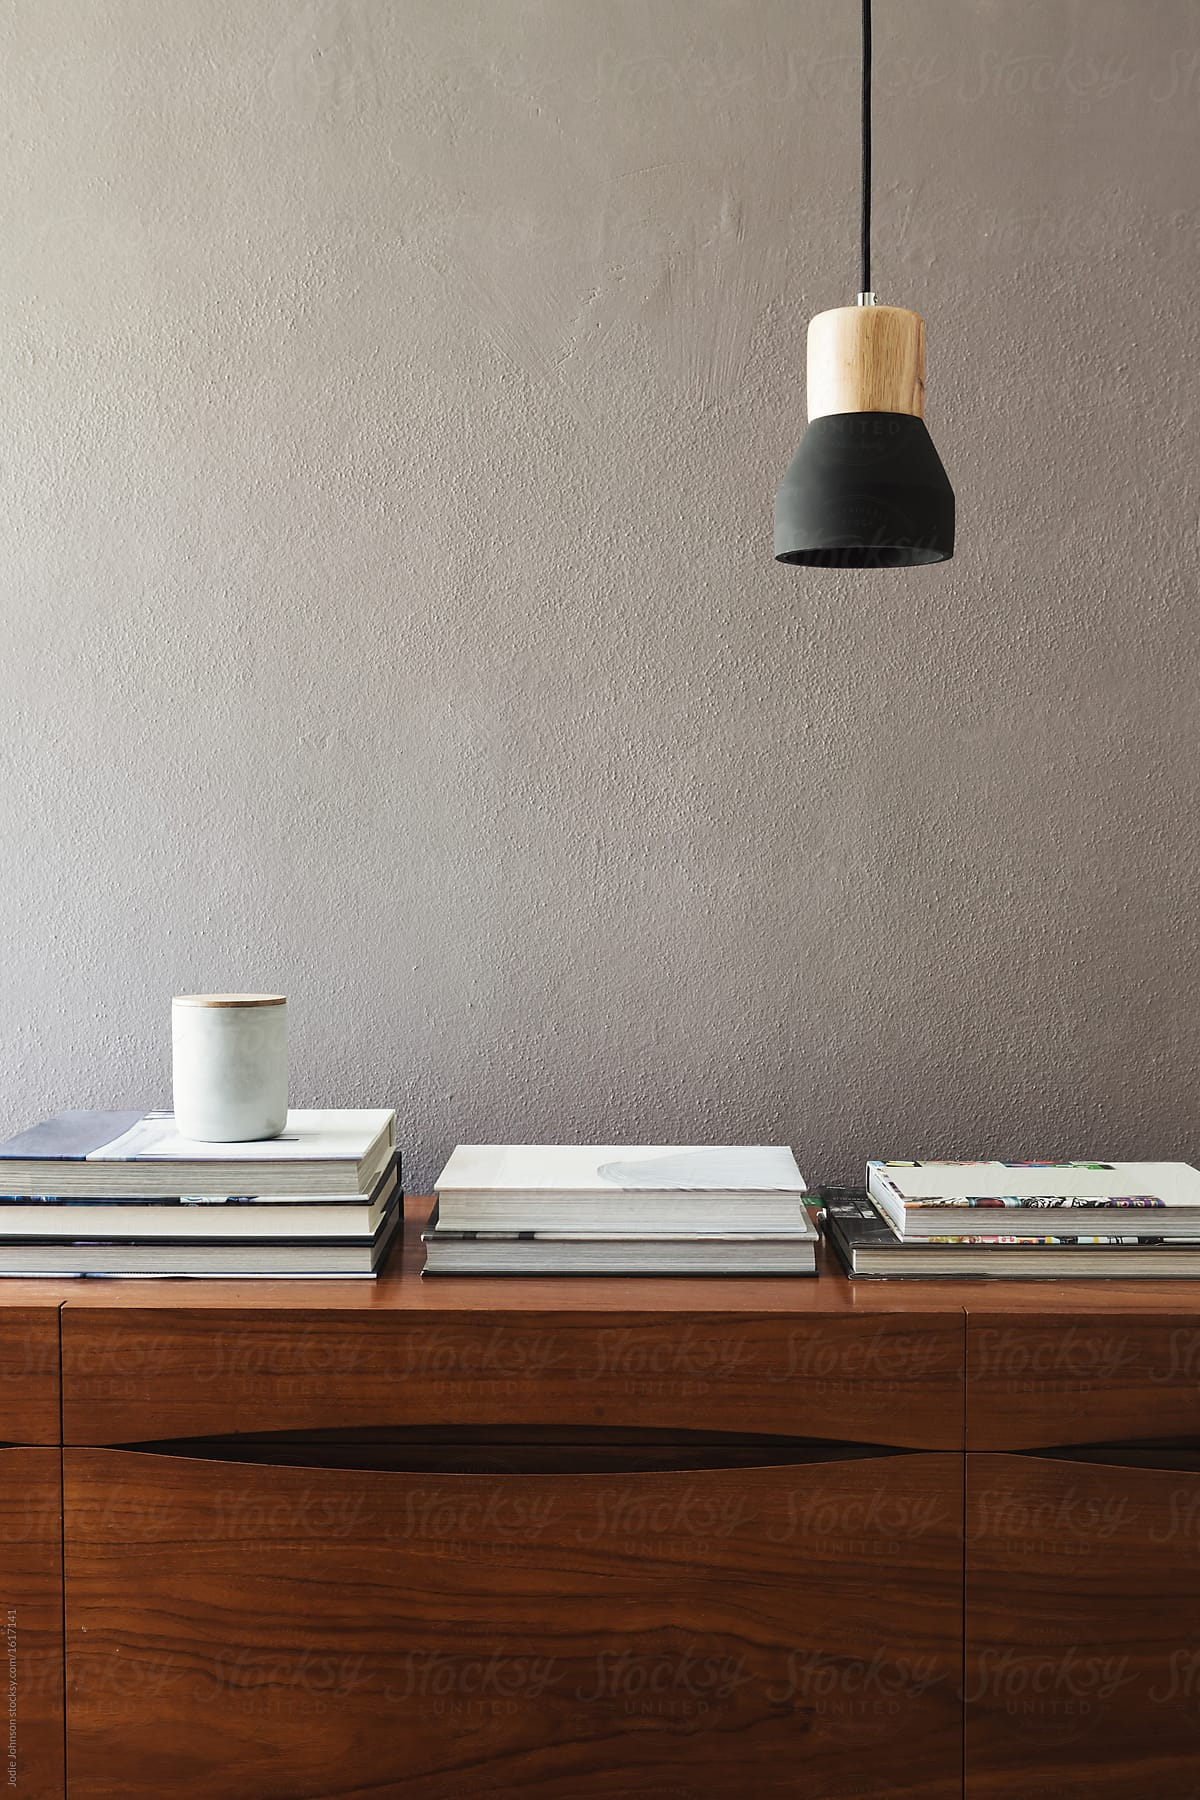 Image of: Mid Century Modern Buffet With Books And Pendant Light By Jodie Johnson Decor Interior Stocksy United